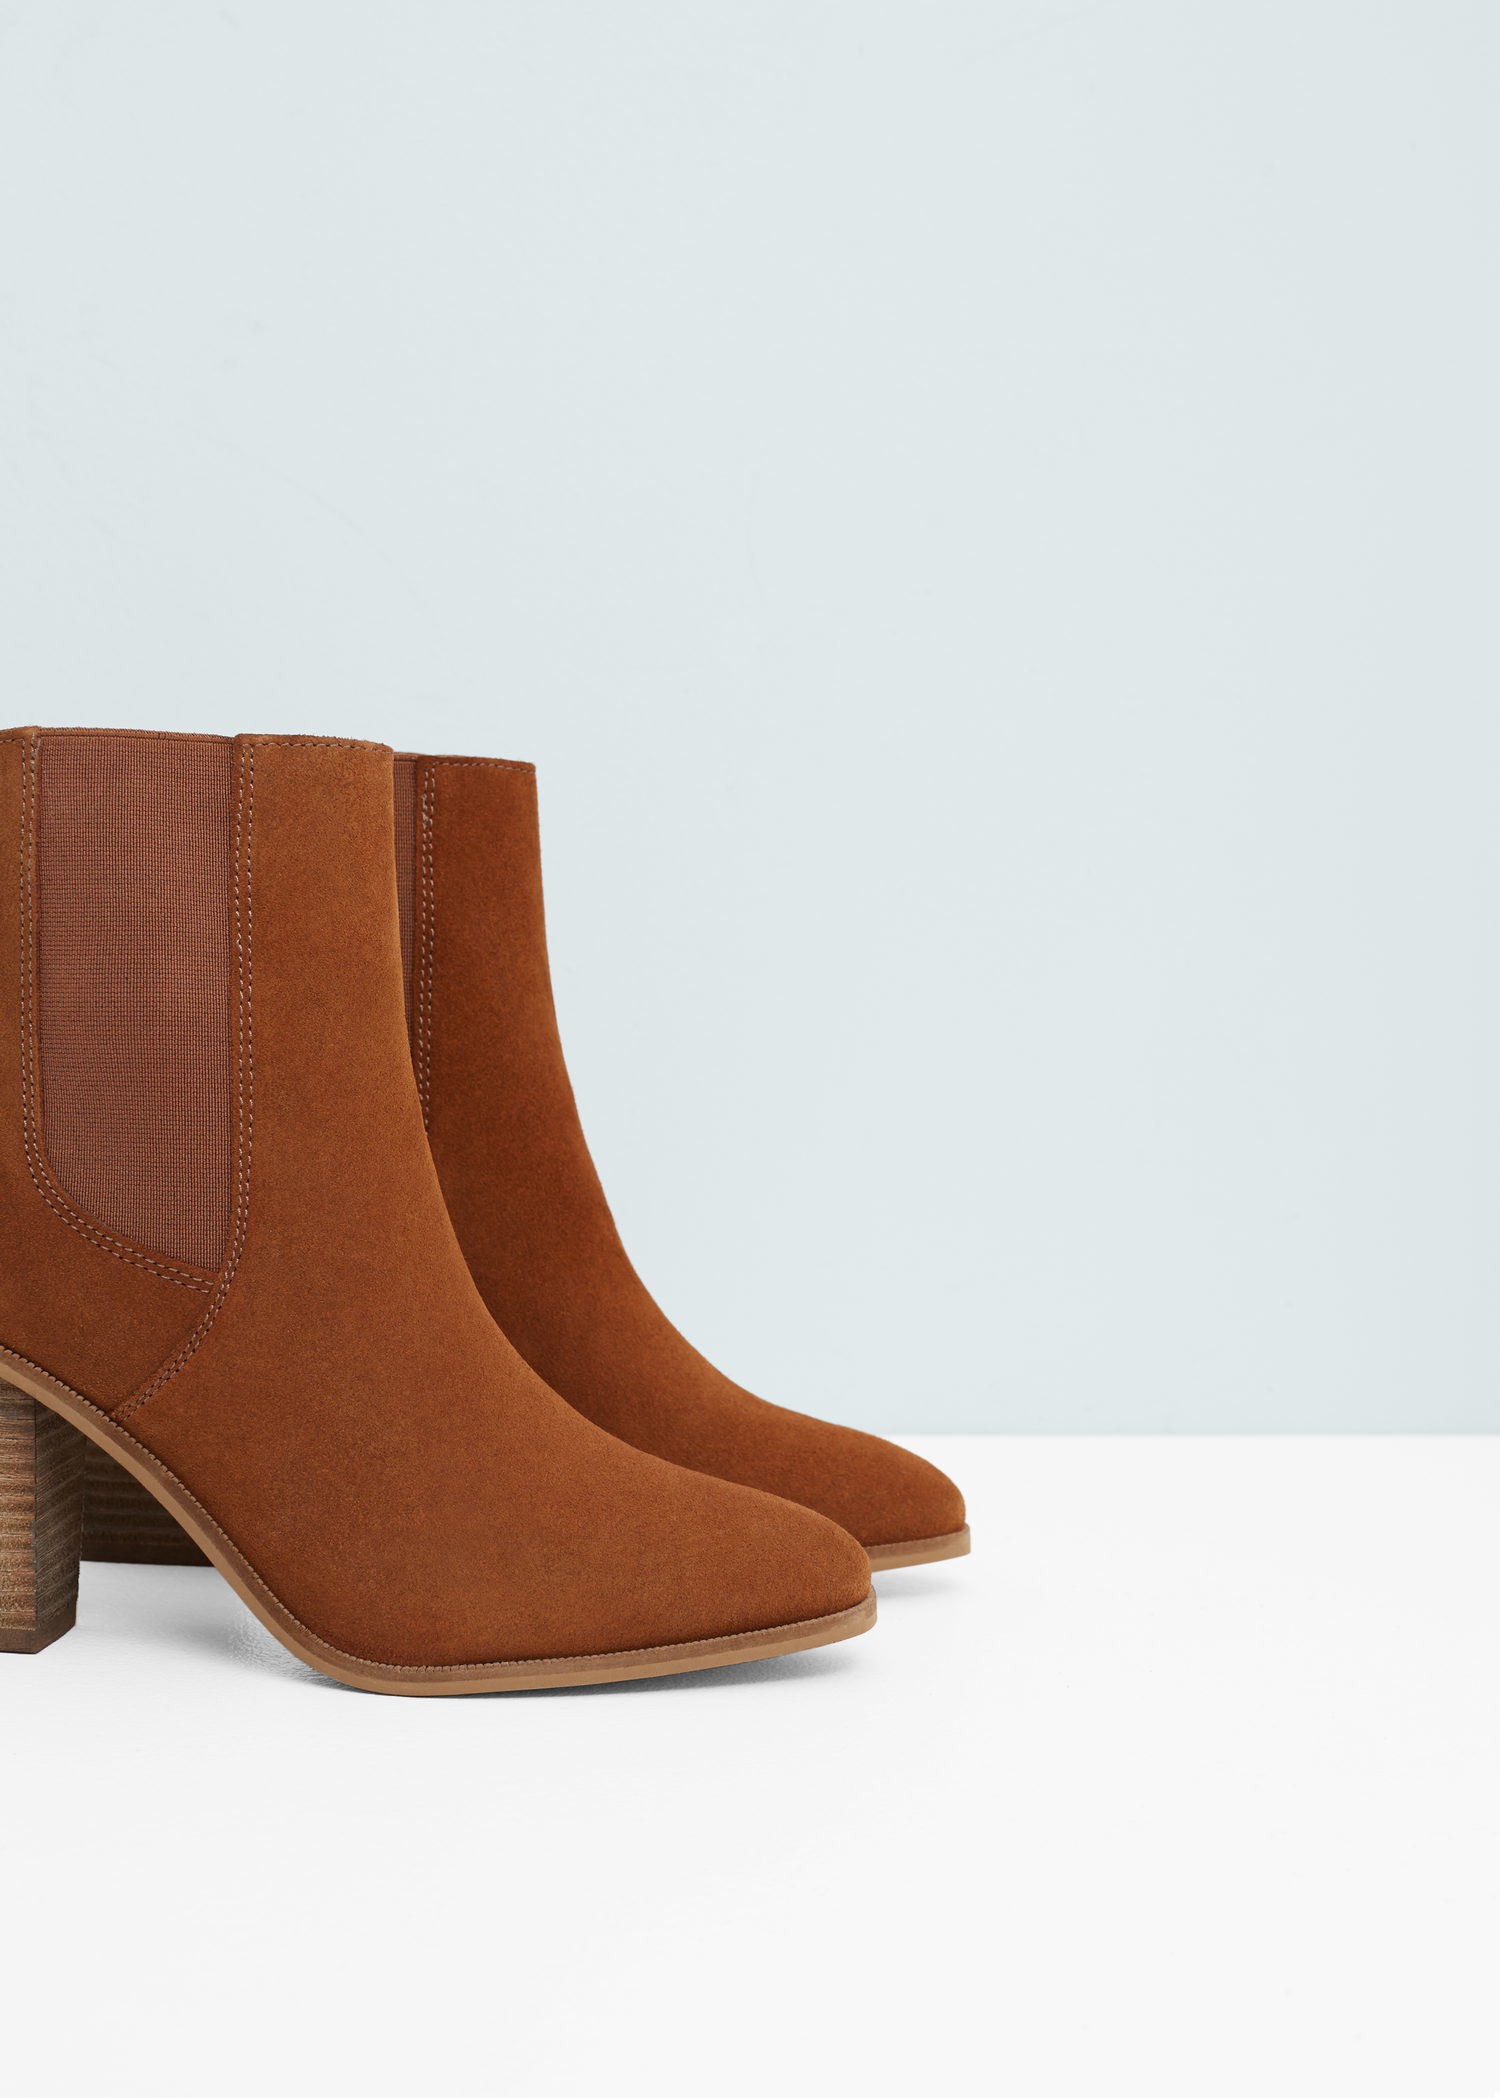 6991741f4bd Mango Brown Heel Leather Ankle Boot